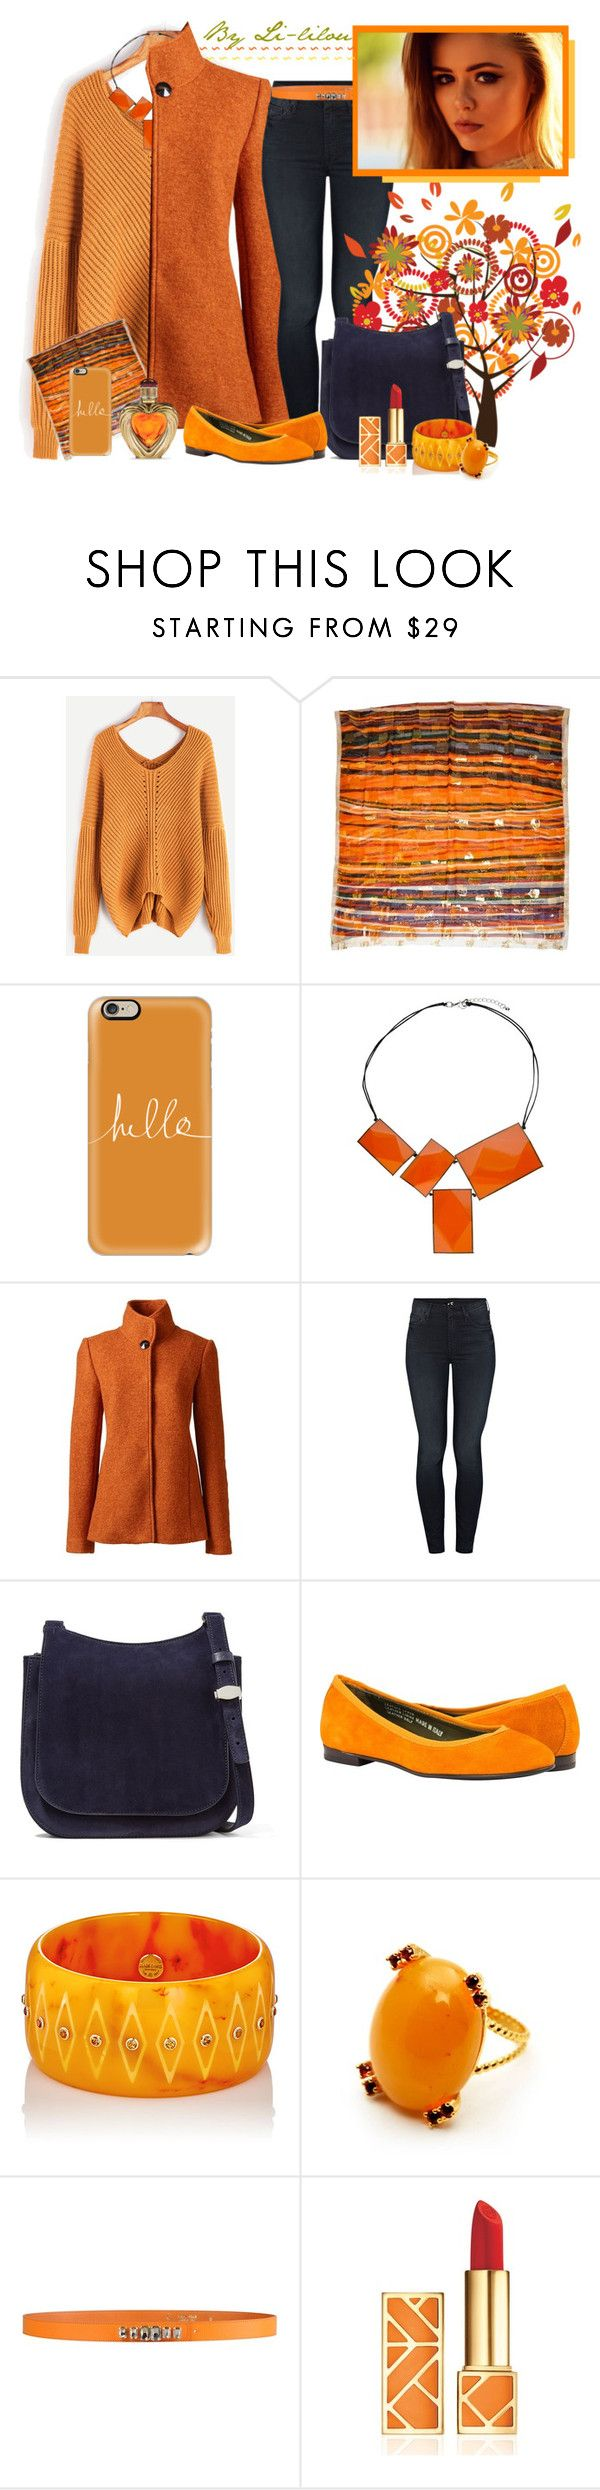 """Orangé en hivers"" by li-lilou ❤ liked on Polyvore featuring WithChic, Pierre Balmain, Casetify, One Button, Lands' End, Mother, The Row, Mark Davis, George J. Love and Tory Burch"